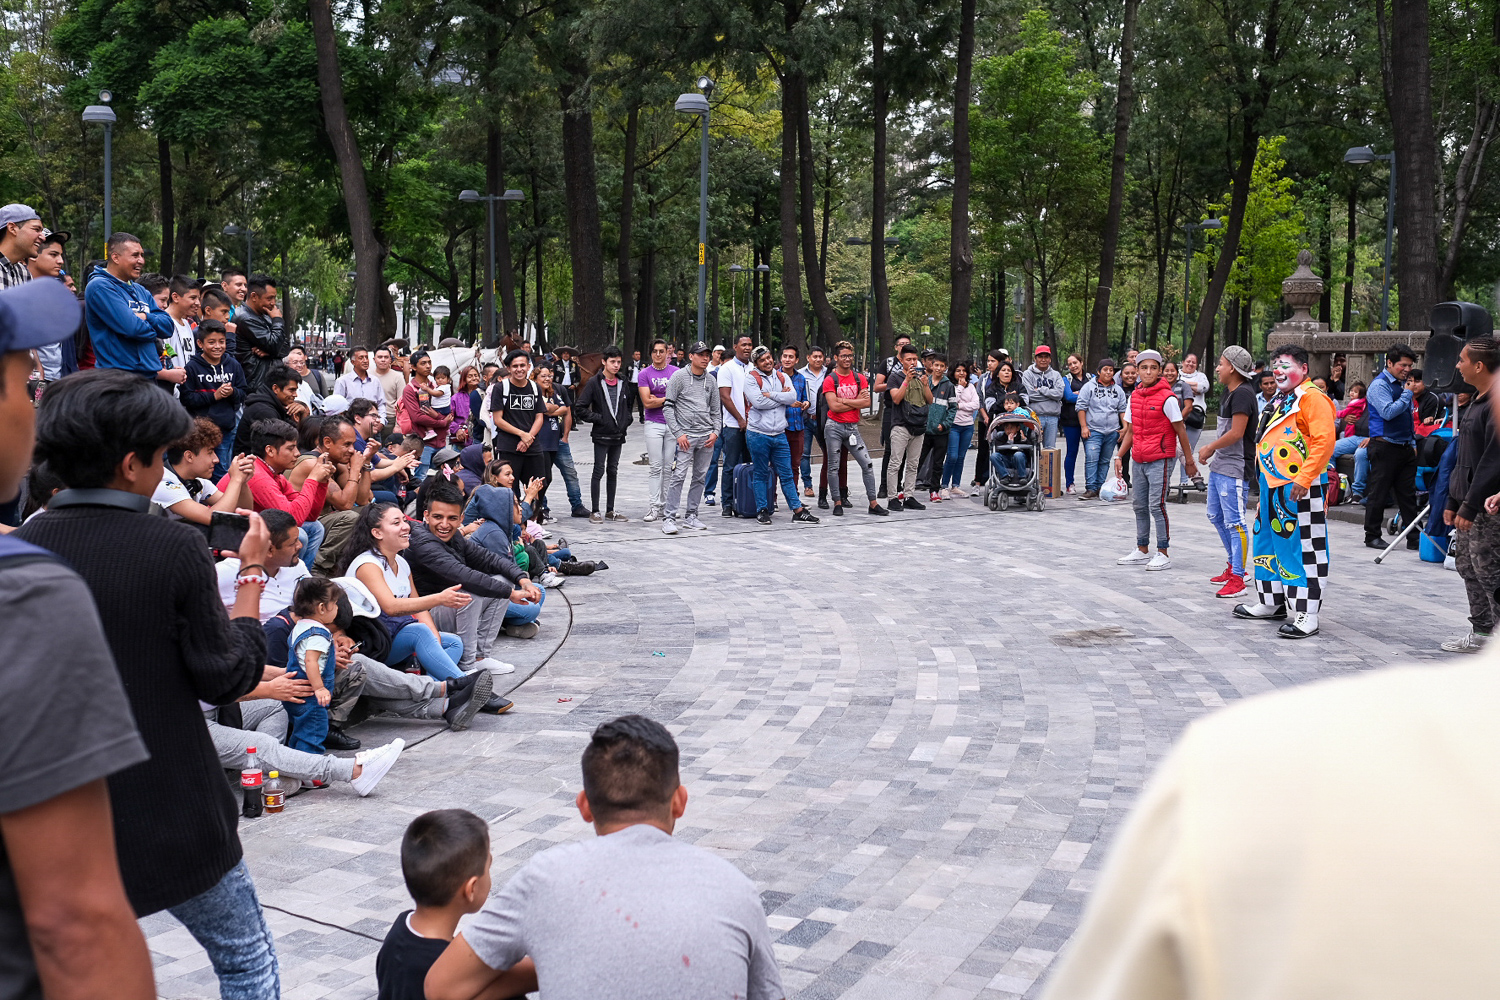 """Activating public spaces can be simple. I am jealous of the amount of public spaces found in Mexico City and Puebla. Plazas, placitas, plazuelas, shaded walkways, public benches are abundant in Mexico. They are central to public life and, on any given evening, it is easy to find crowds of people enjoying the parks in their own way. Above is one example. I'm not sure why, but clowns are really popular in Mexico. They captivate crowds of people sitting in ad hoc stadium seating, made of sidewalks, fountain ledges and monuments. Within a few meters of this clown show in  Alameda Central , there were ice cream vendors, rappers battling each other, and young couples enjoying some pizza on a park bench. The plaza is simply built, with very little in terms of what we would consider """"park fixtures."""" No basketball courts, no fields, no jungle gym. No signs telling you what you can't do. The  Alameda Central  is a blank canvas on which the people of the community paint a beautiful collage made up of their favorite activities."""